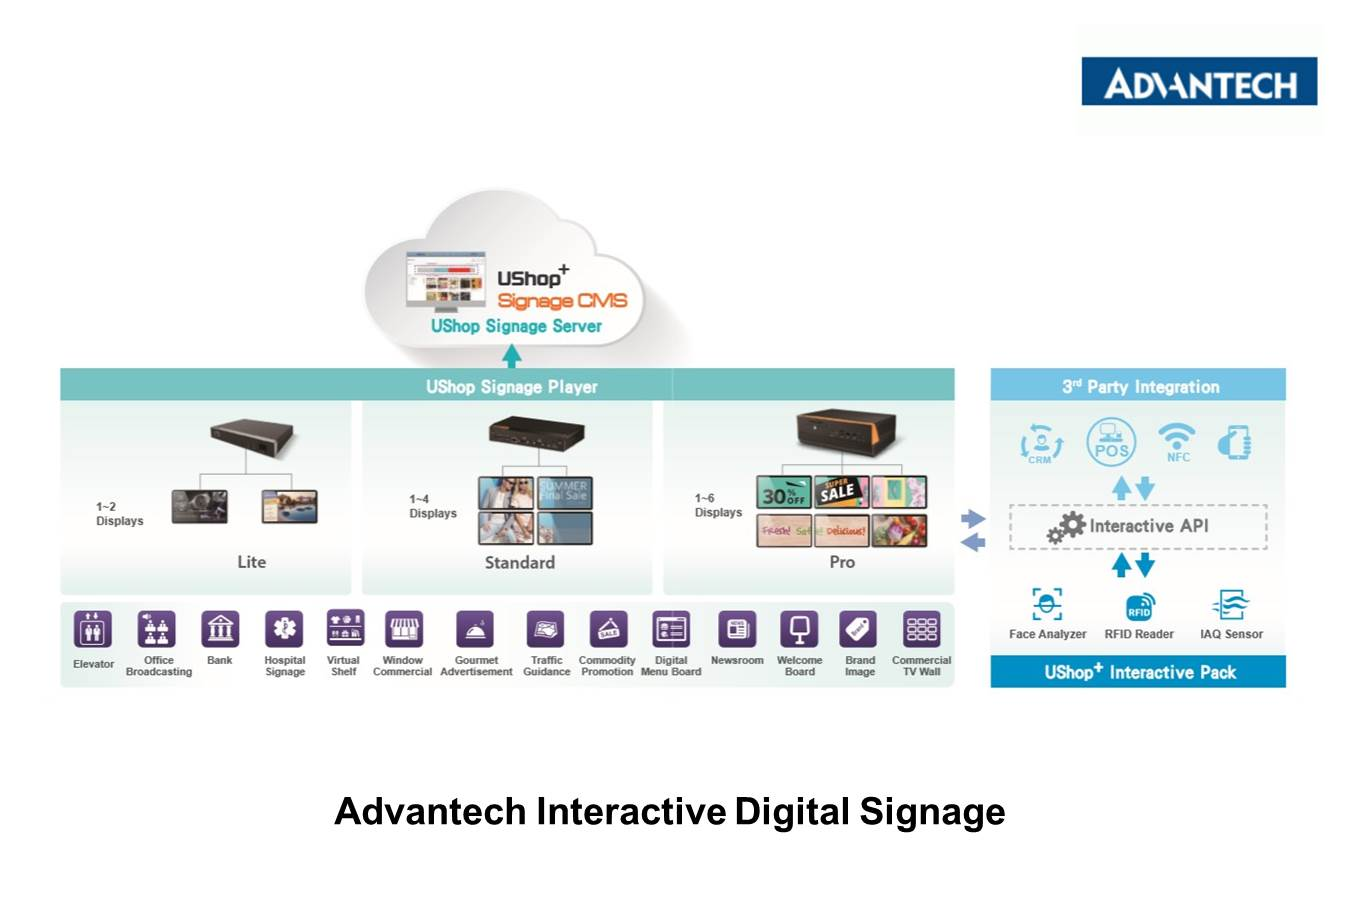 Advantech interactive Digital Signage